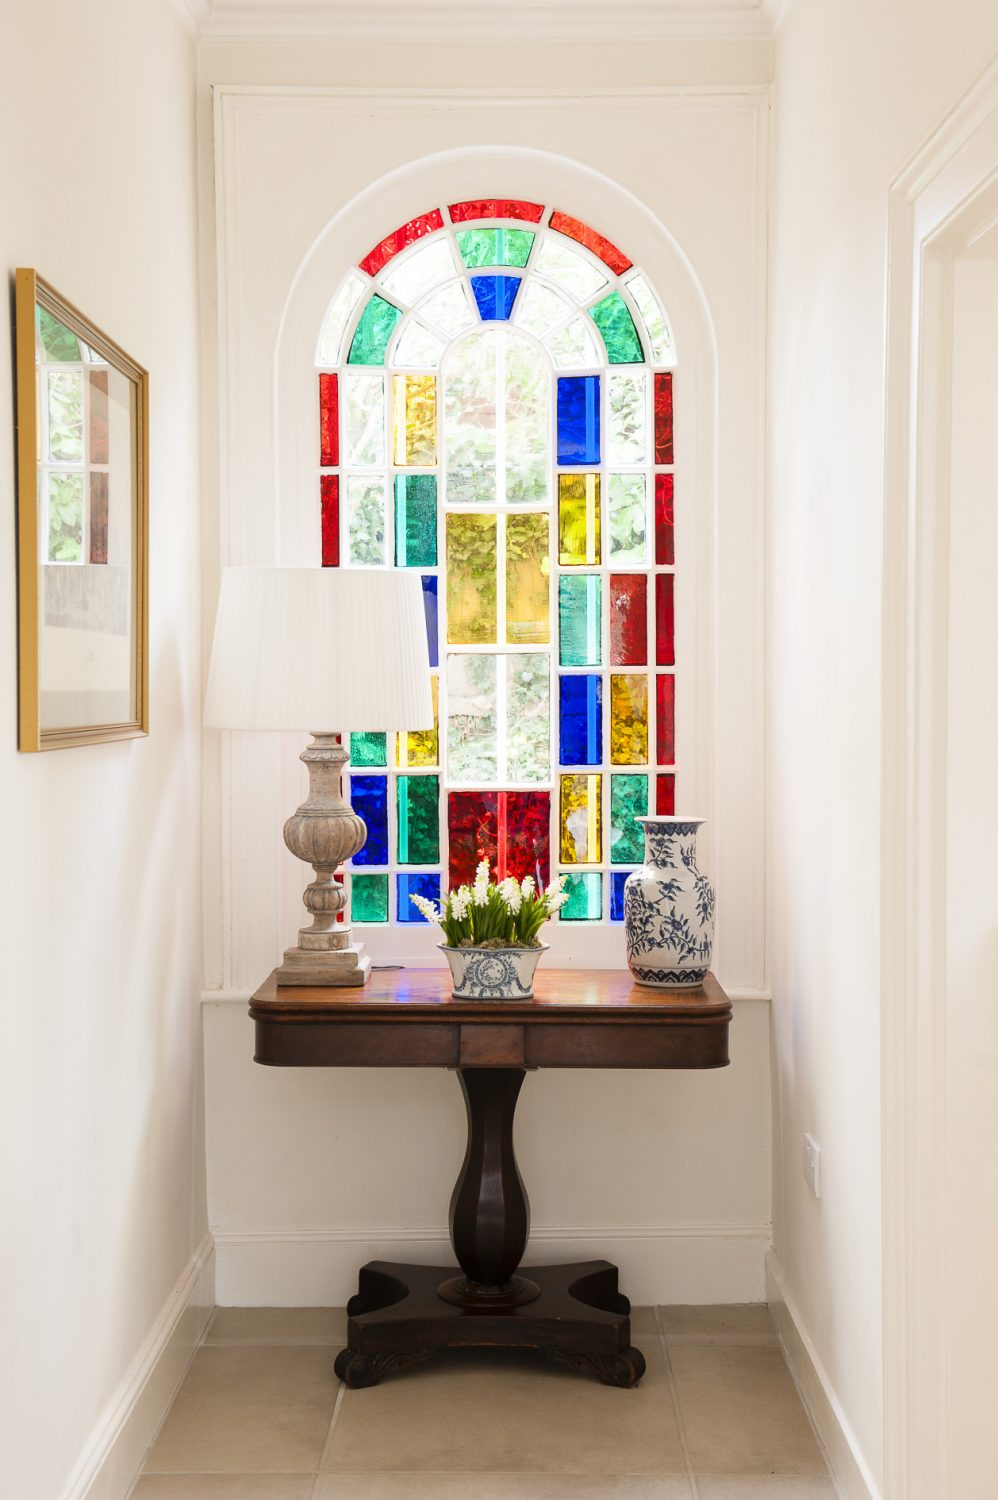 A stained glass window adds a pop of colour to the cool white hallway